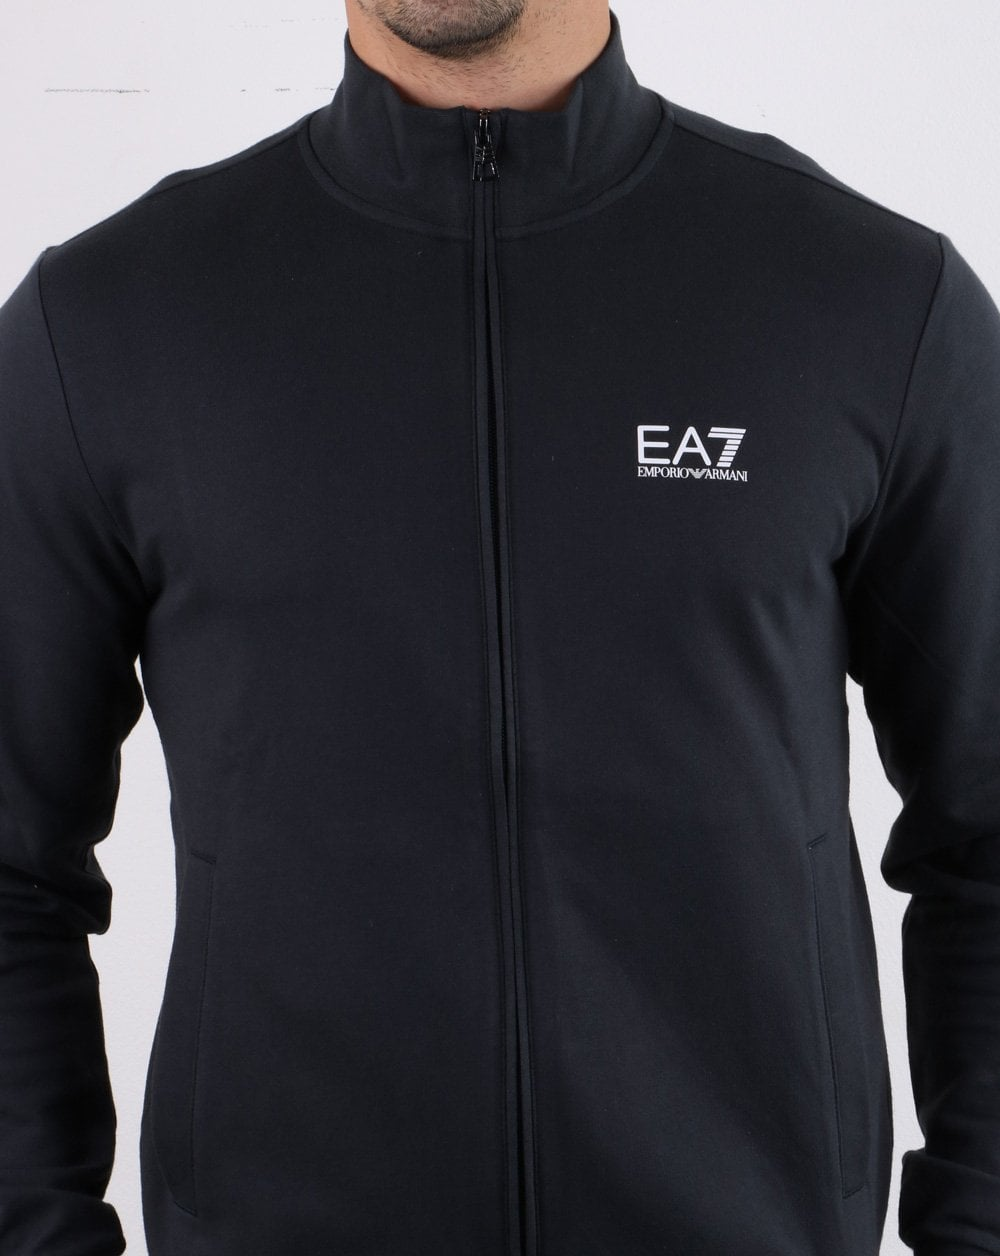 discount up to 60% world-wide selection of attractivefashion Emporio Armani EA7 Track Top DK Navy